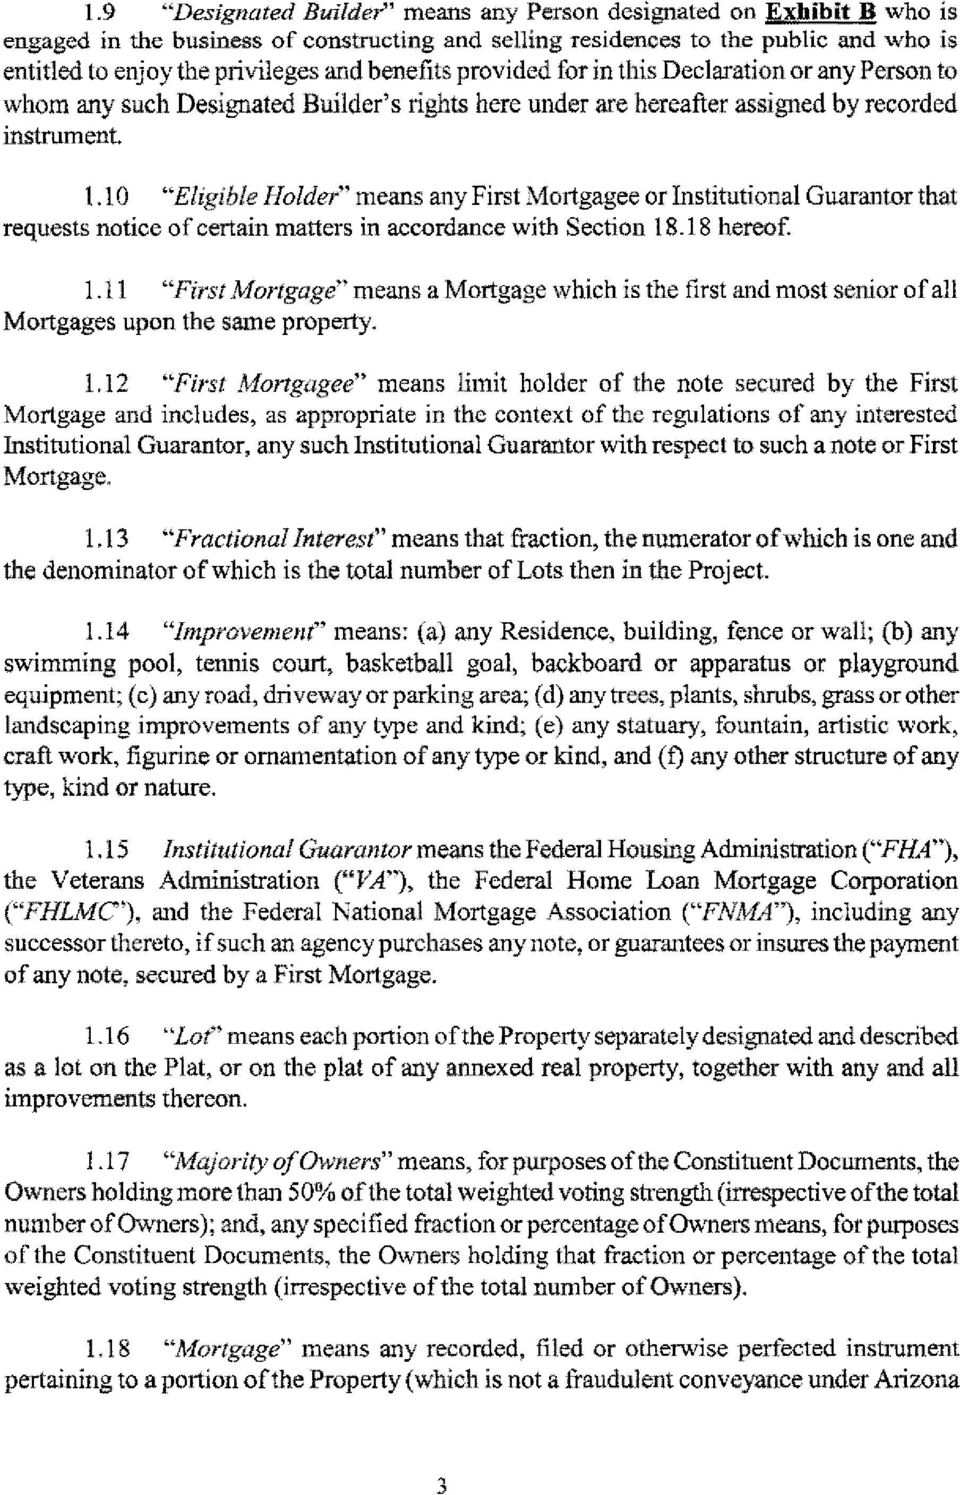 "10 ""Eligible Holder"" means any First Mortgagee or Institutional Guarantor that requests notice of certain matters in accordance with Section 18"